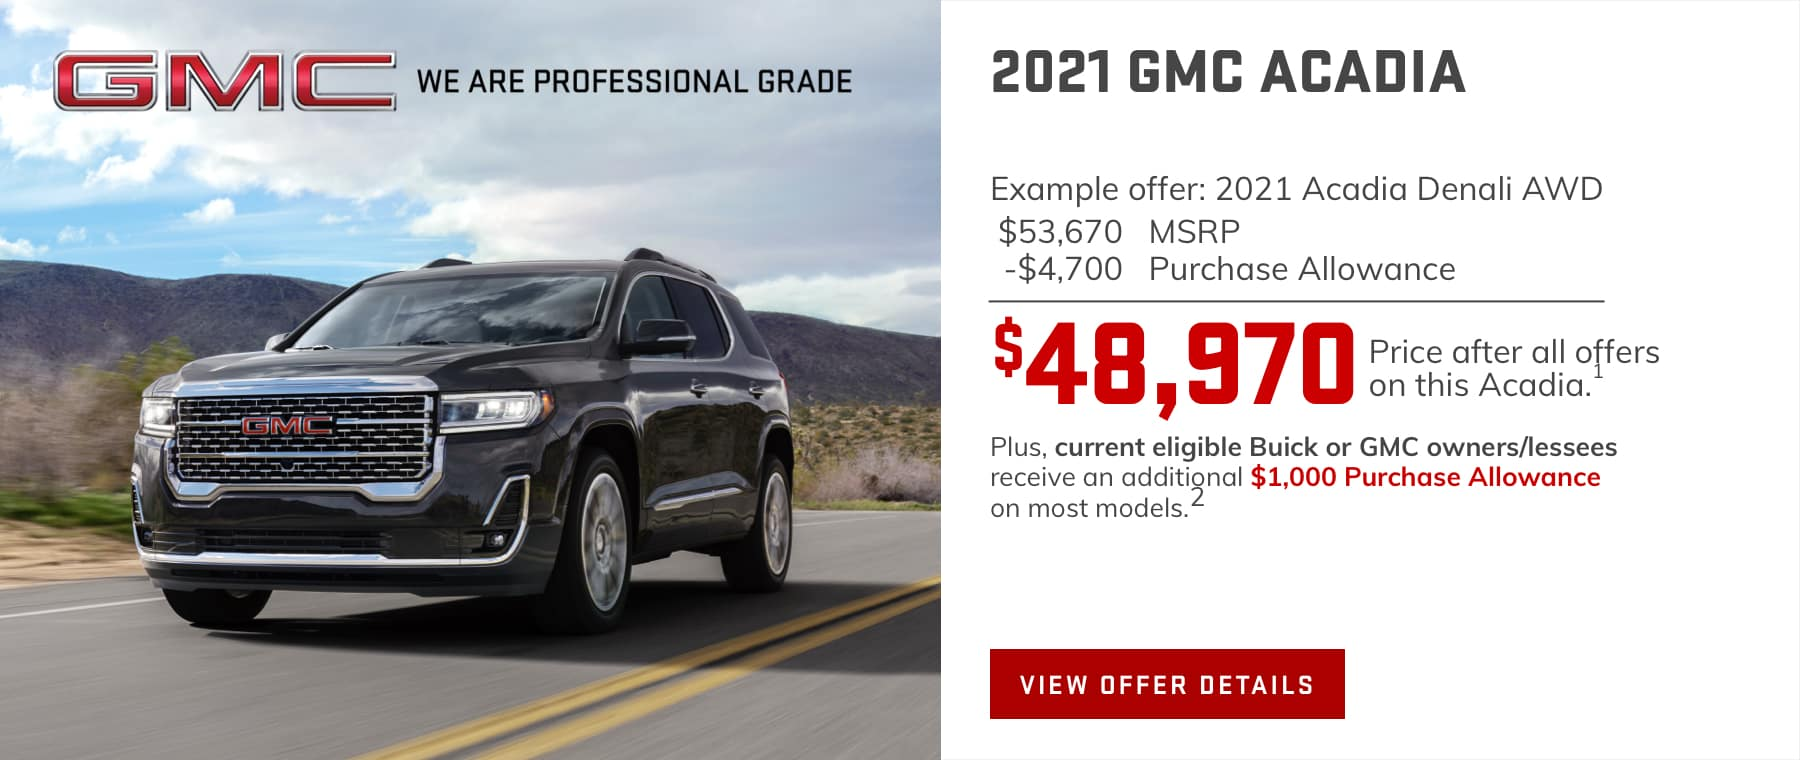 $4,700 Purchase Allowance on most models.1 Plus, current eligible Buick or GMC owners/lessees receive an additional $1,000 Purchase Allowance on most models.2